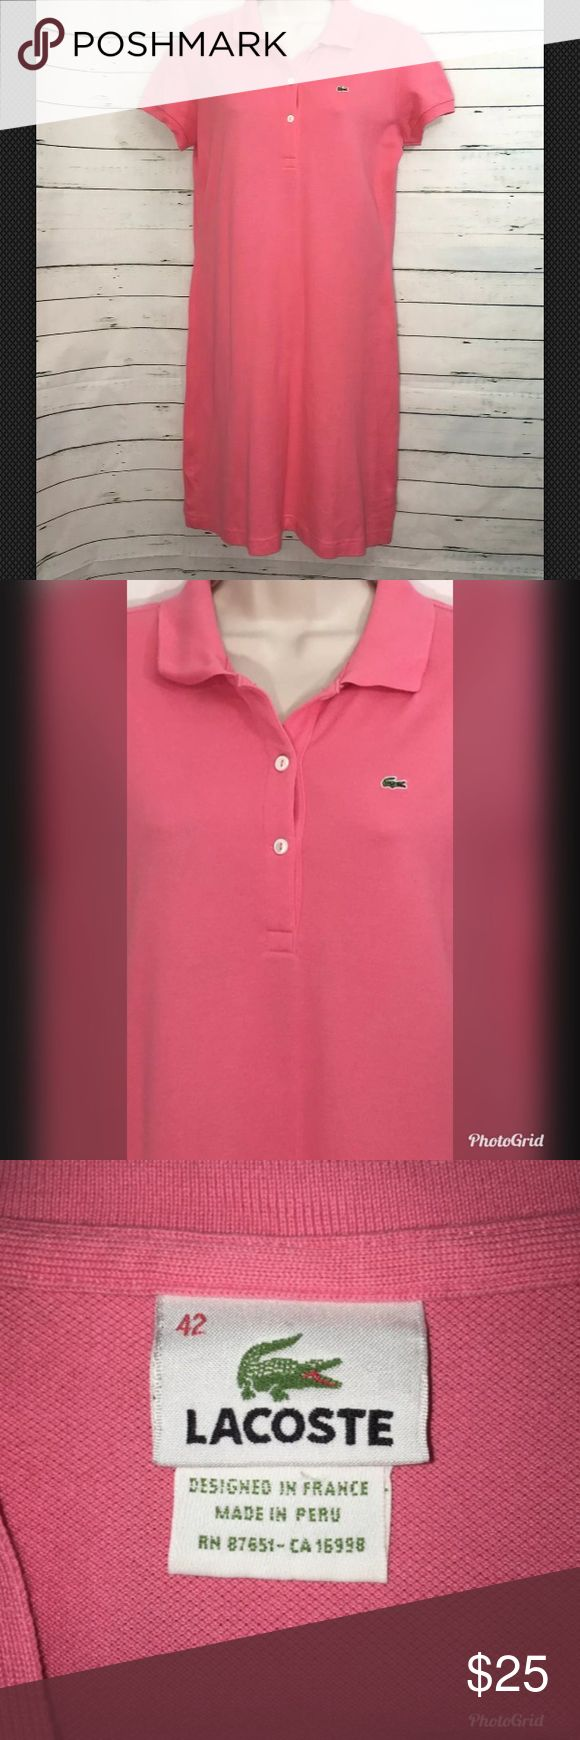 "Lacoste Polo Shirt Coral Short Sleeve Dress Lacoste Womens Size 42 Polo Shirt Dress Coral Short Sleeve Flowing Knee Length  Measurements  Bust 19""  Shoulder 15.5""  Length 36.5"" Excellent condition. Very light faint spots please see all photos. Lacoste Dresses"